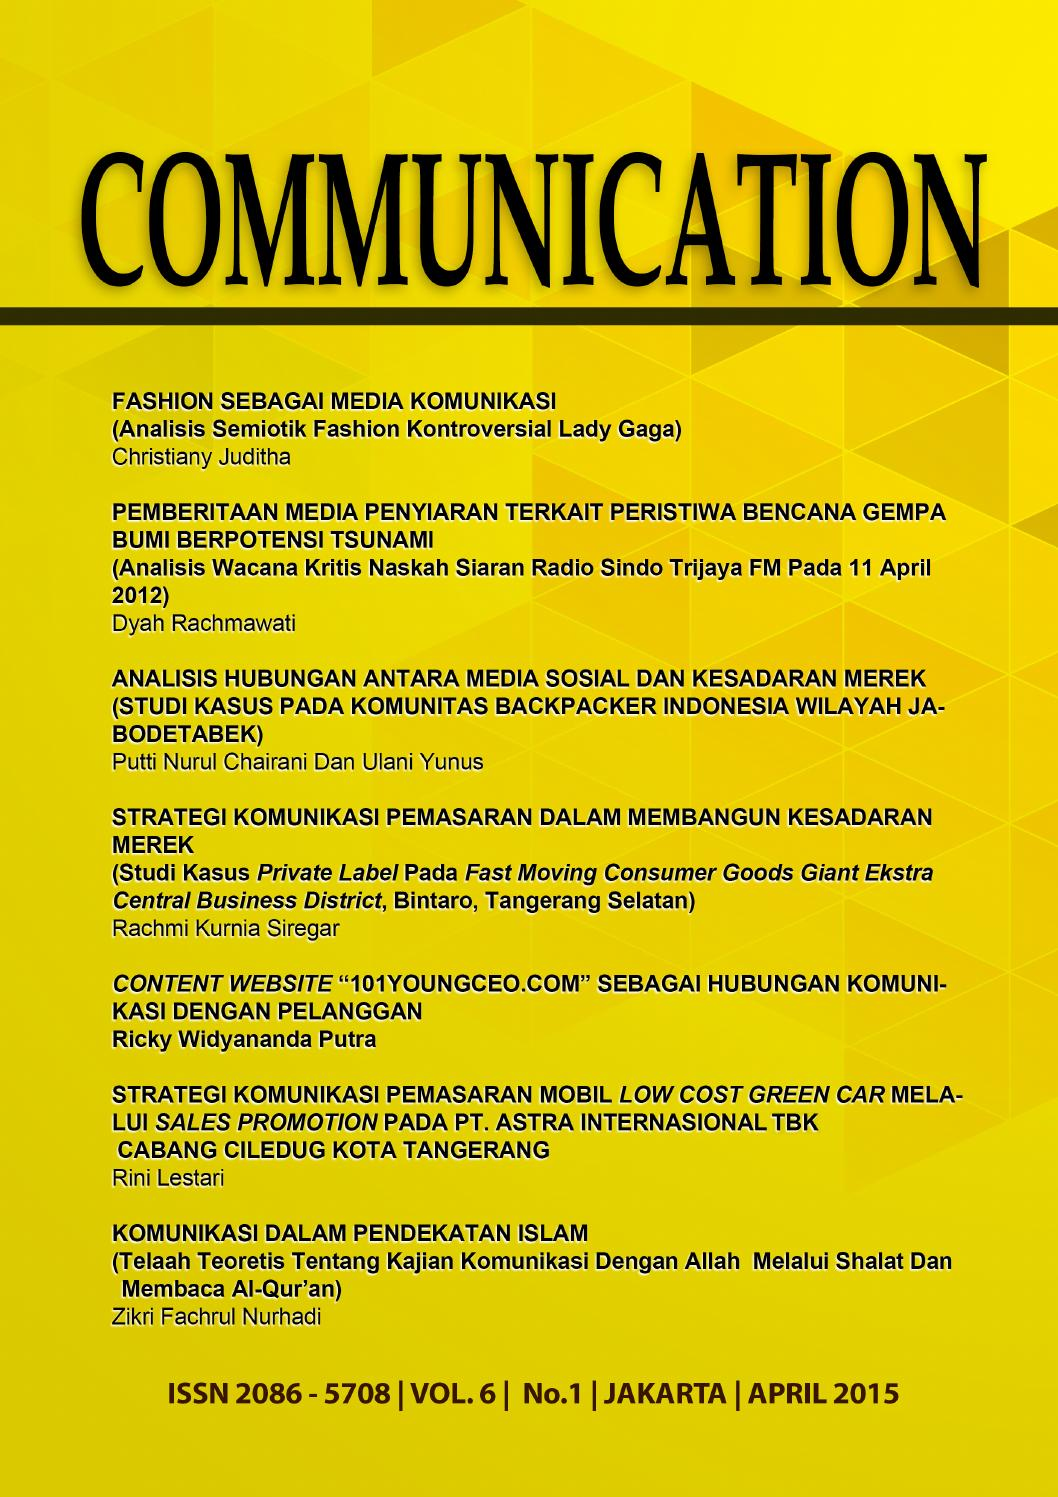 Jurnal Communication April 2015 By Arief Ruzlan Issuu Pengaman Pintu Bagian Atas Dan Bawah Green Dragon